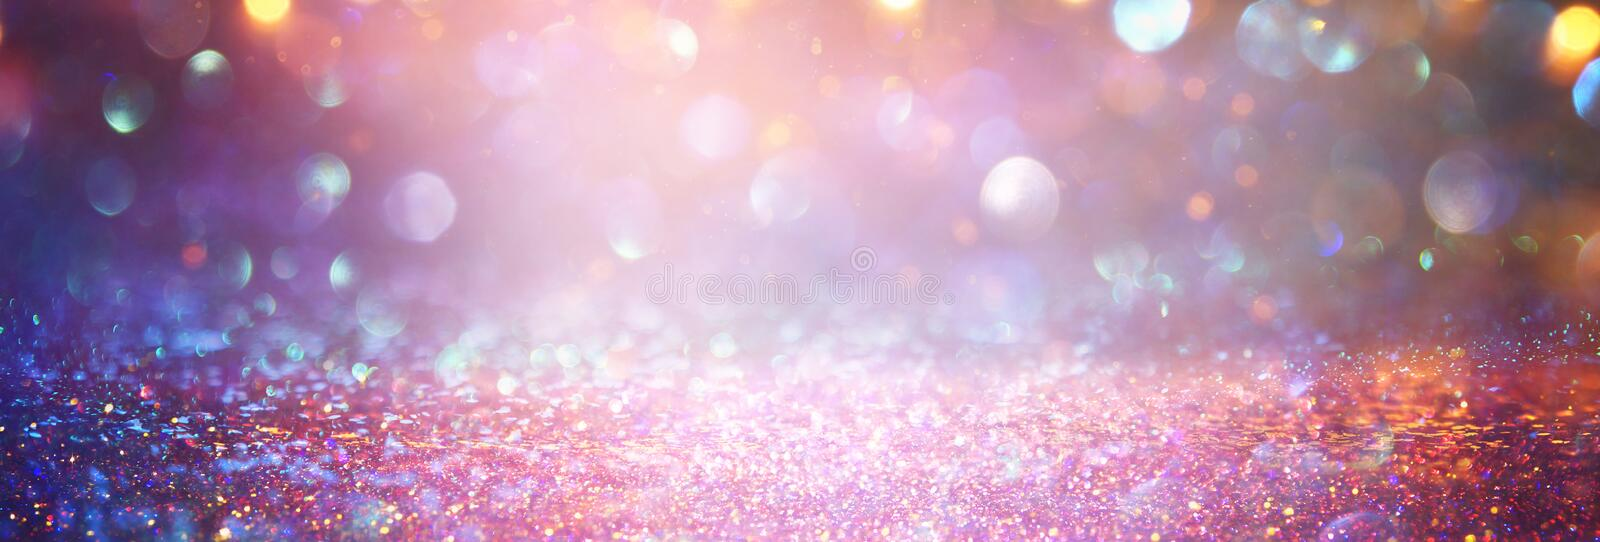 Background of abstract red, gold and purple glitter lights. defocused.  stock images